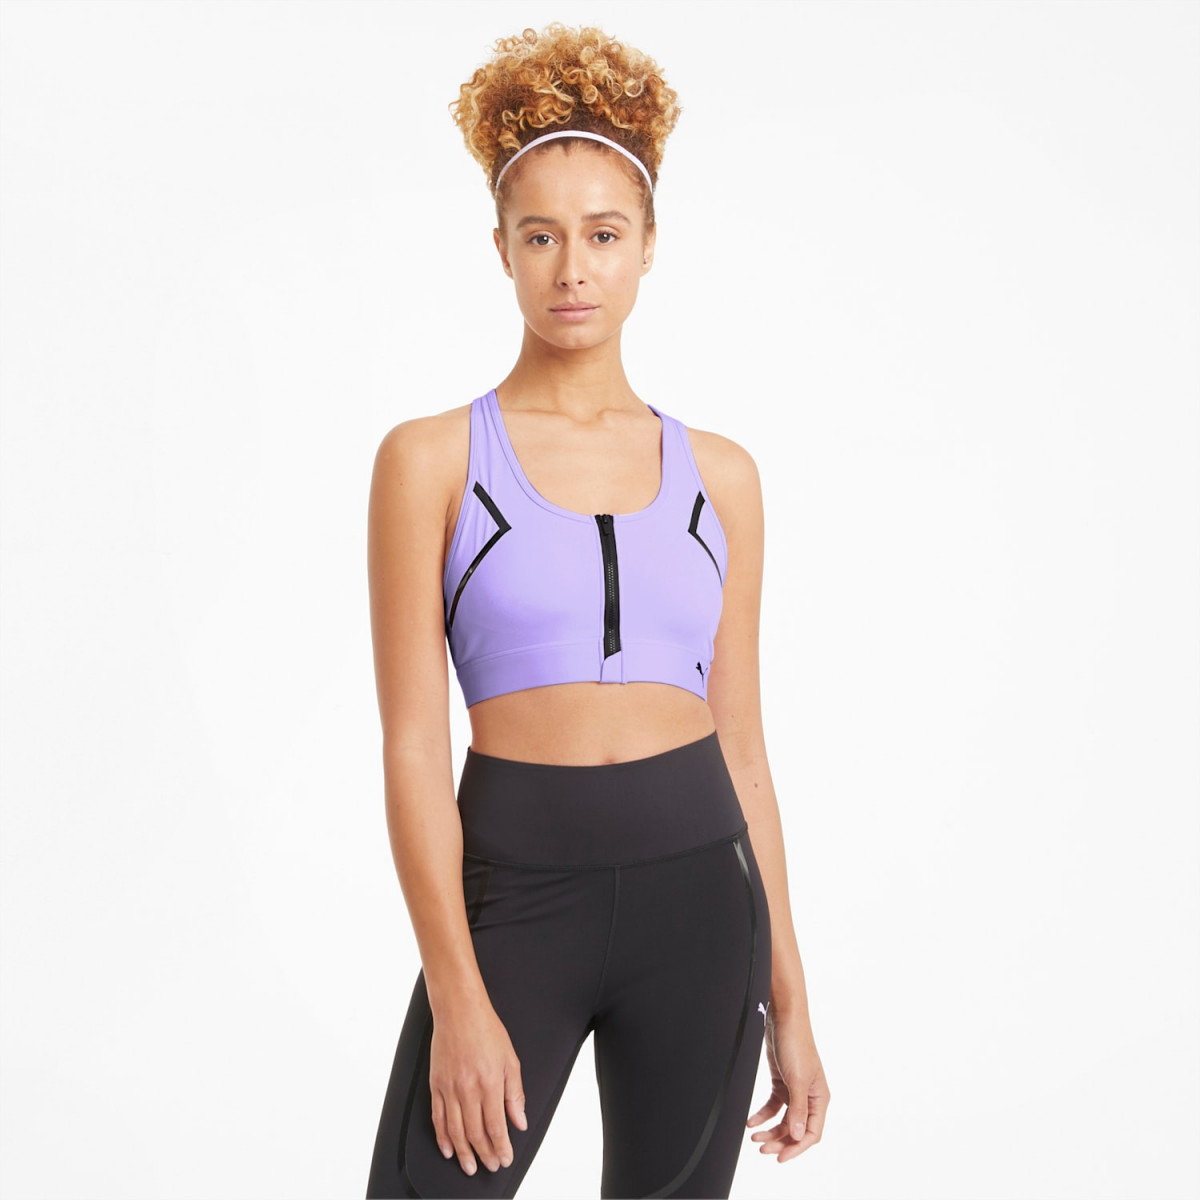 10 Fitness Brands Like Gymshark That Are Equally Amazing | Travel Beauty Blog